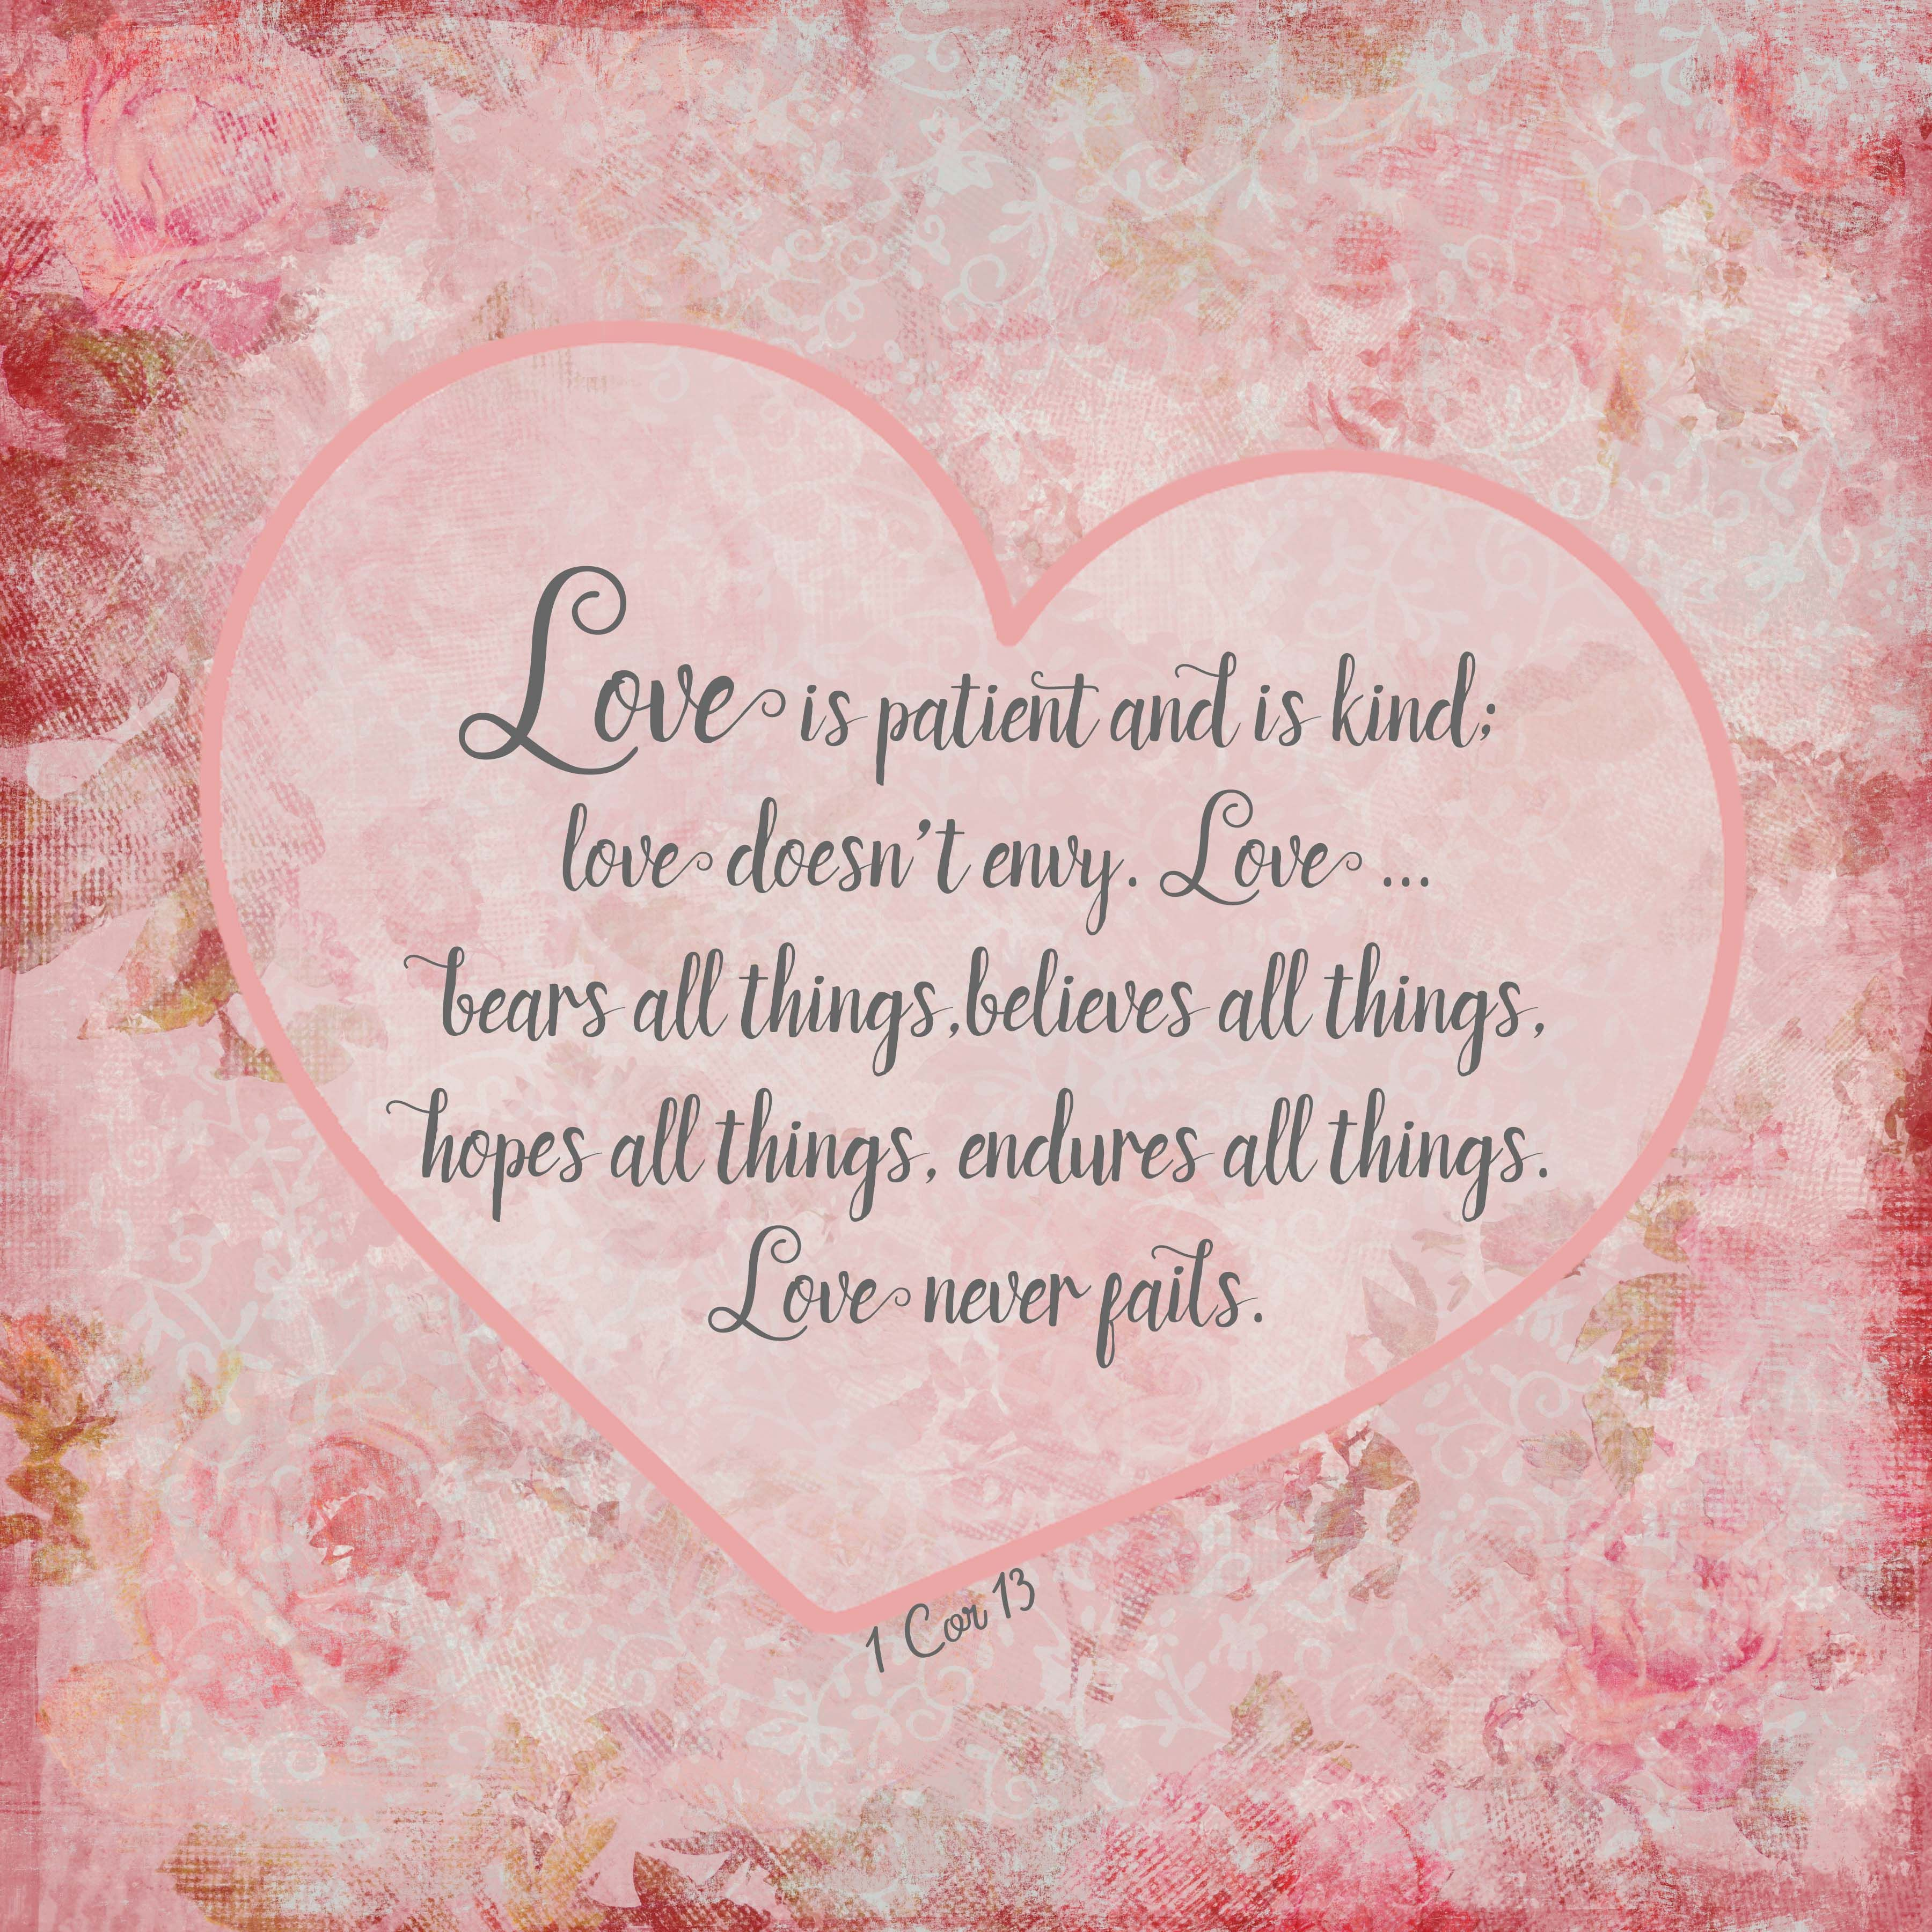 Love Is Patient And Is Kind Love Doesn T Envy Love Bears All